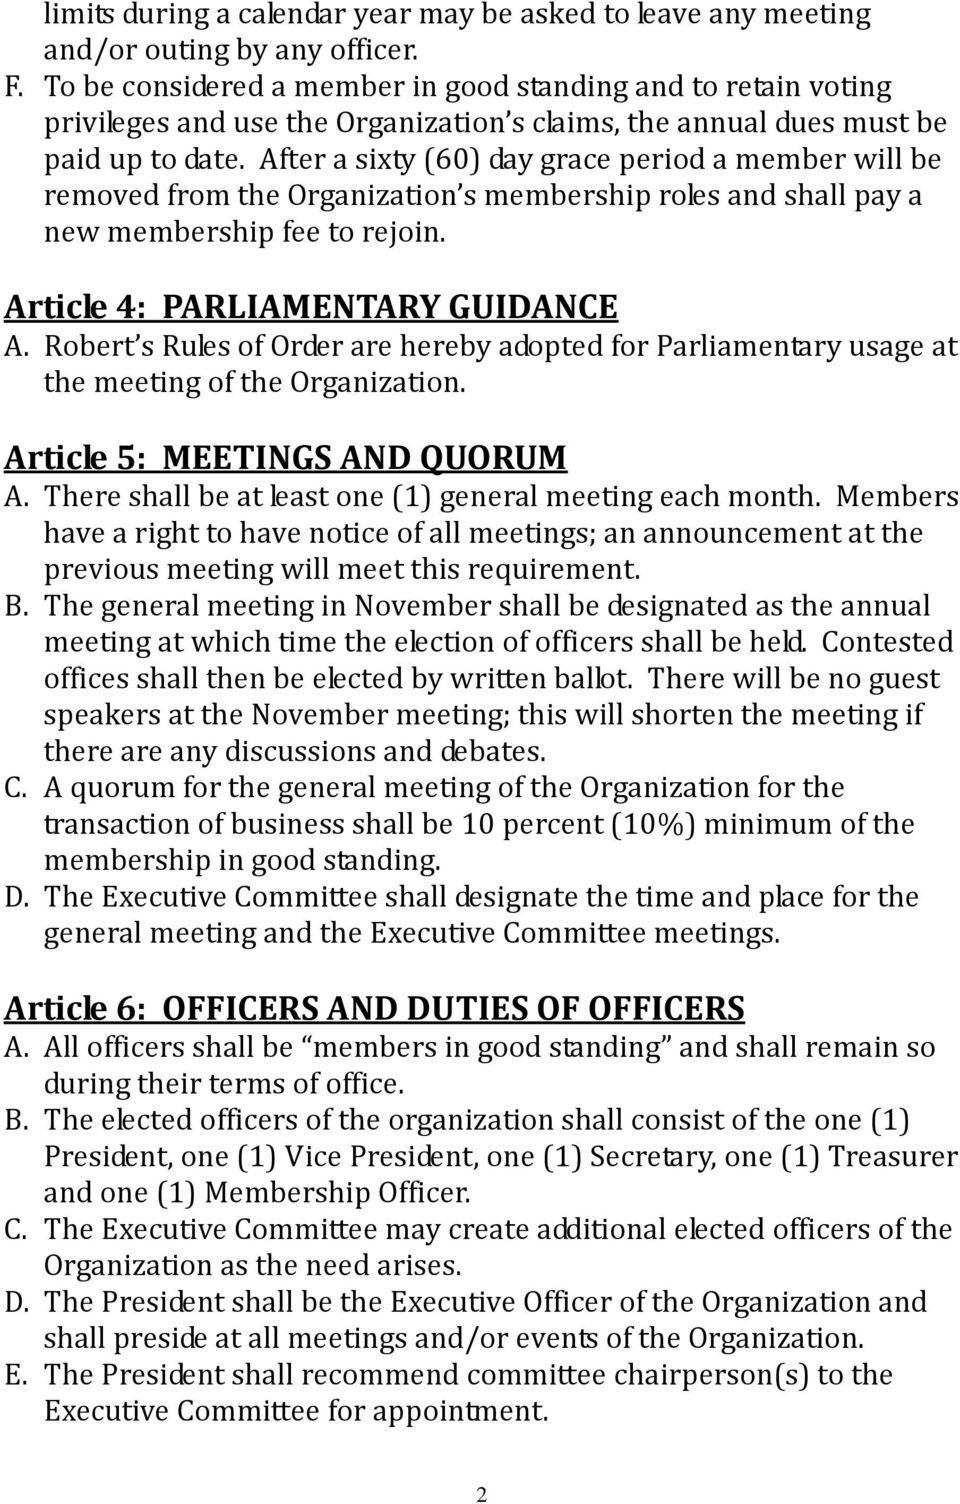 After a sixty (60) day grace period a member will be removed from the Organization s membership roles and shall pay a new membership fee to rejoin. Article 4: PARLIAMENTARY GUIDANCE A.